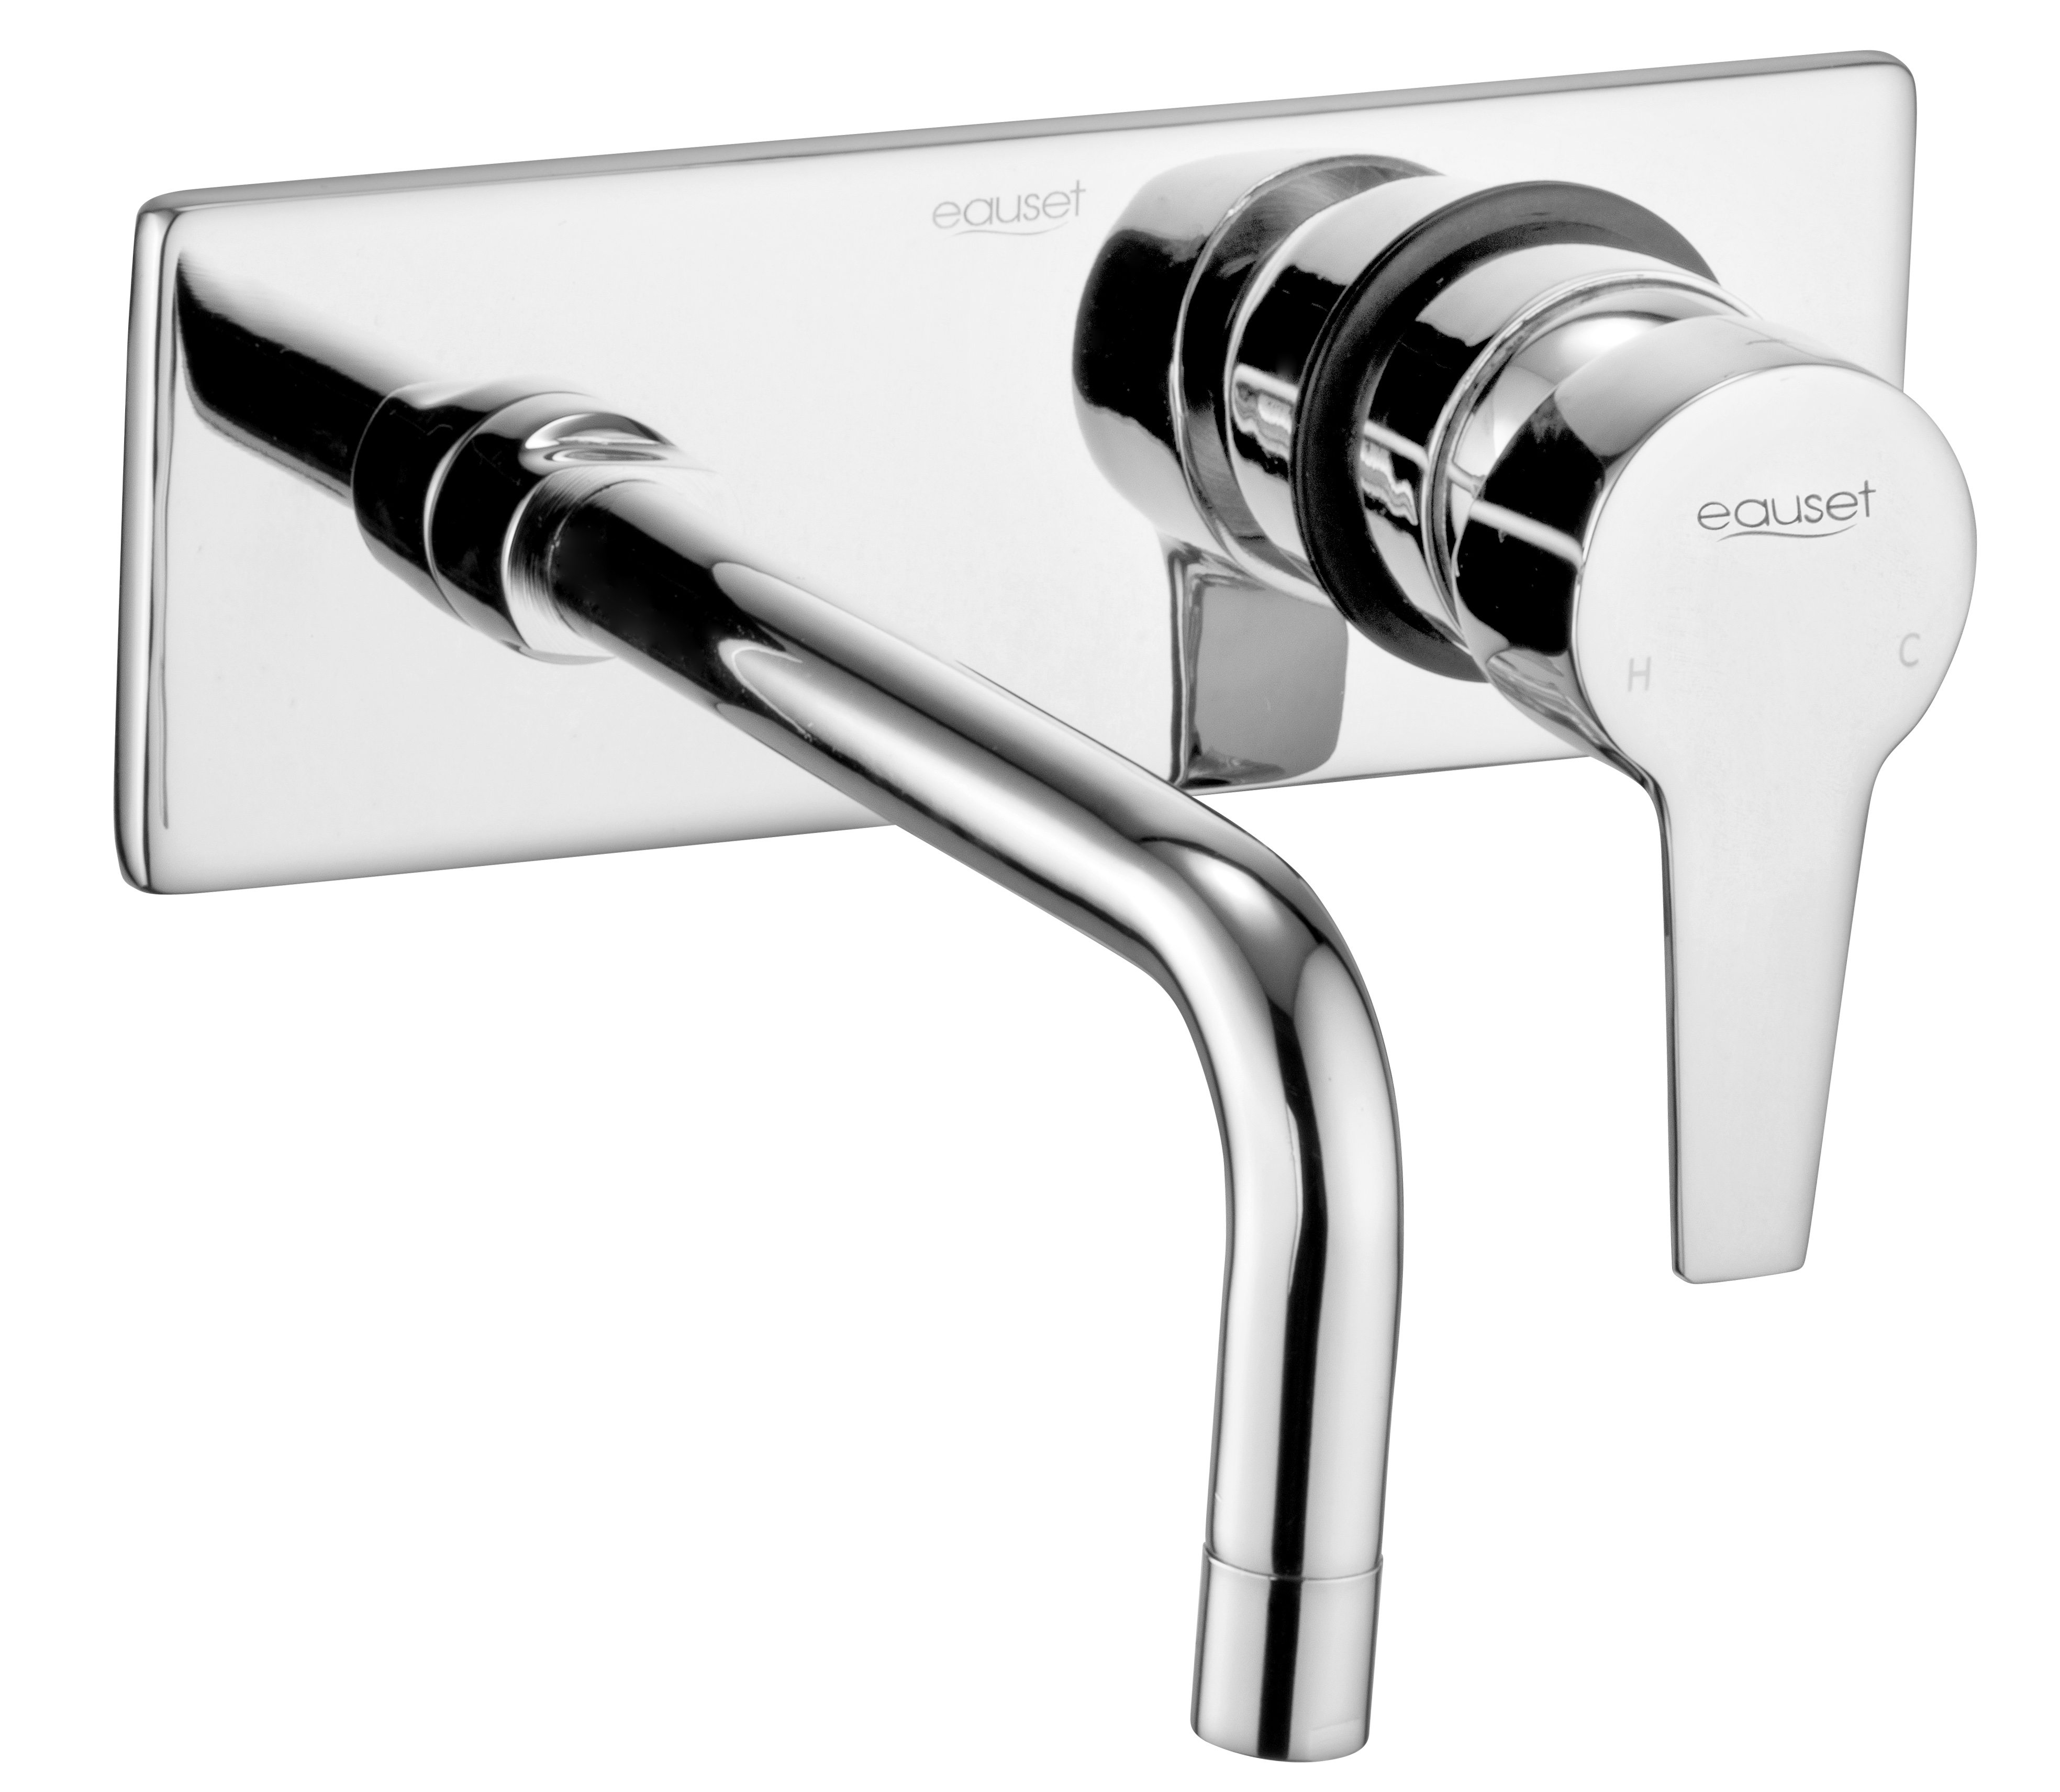 Exposed Part Kit Of Single Lever Concealed Basin Mixer With Single Plate Flange And Pipe Spout.